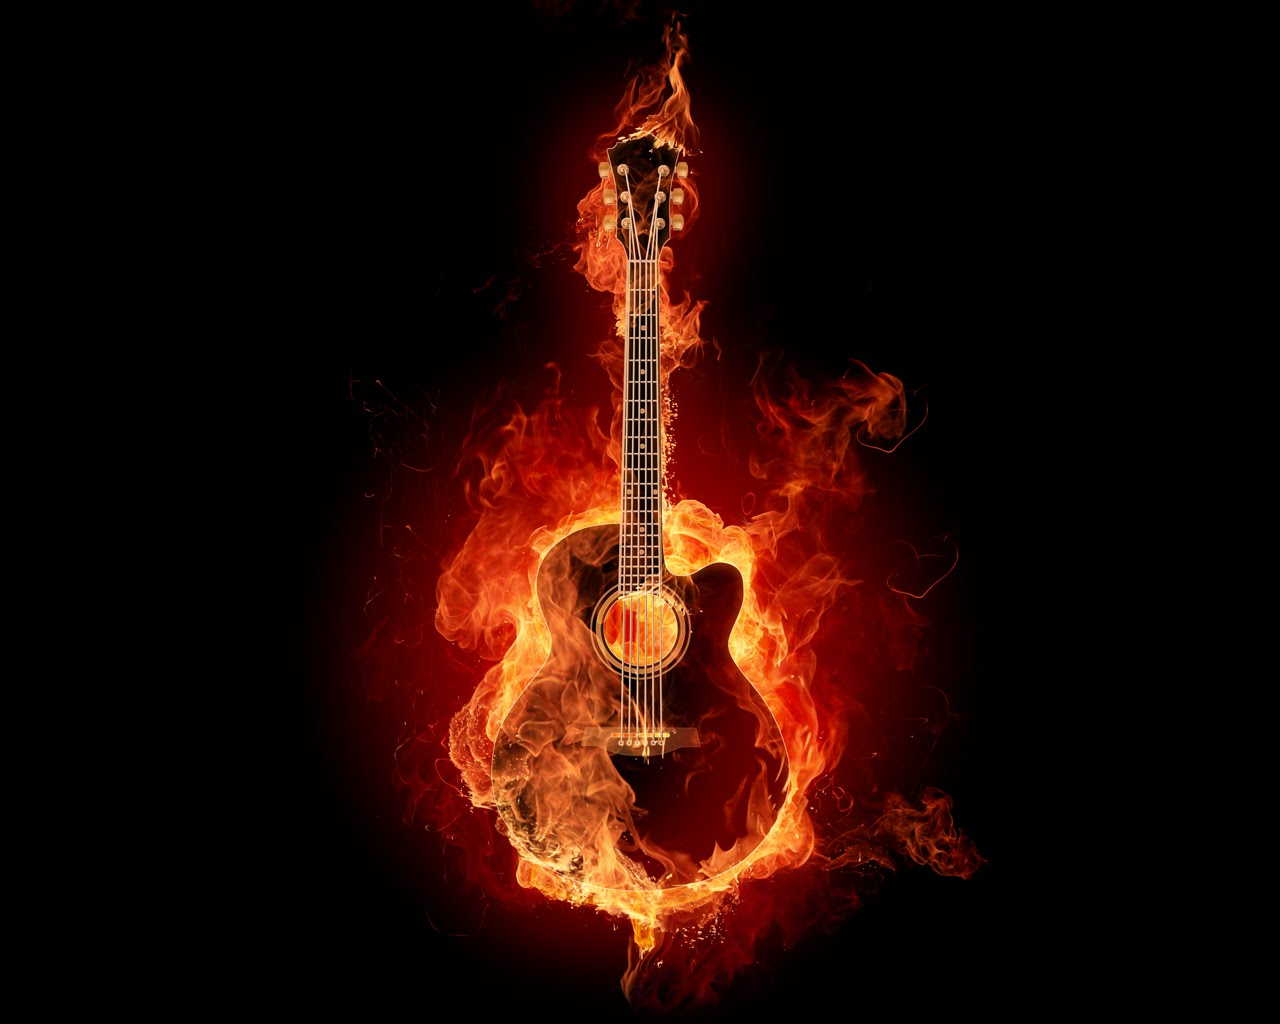 http://4.bp.blogspot.com/_bqXyZnE_mWc/TDMD9IoGyiI/AAAAAAAAADc/5RctpZk1L0g/s1600/Funny_wallpapers_Creative_Wallpaper_Guitar_is_on_fire_013663_.jpg